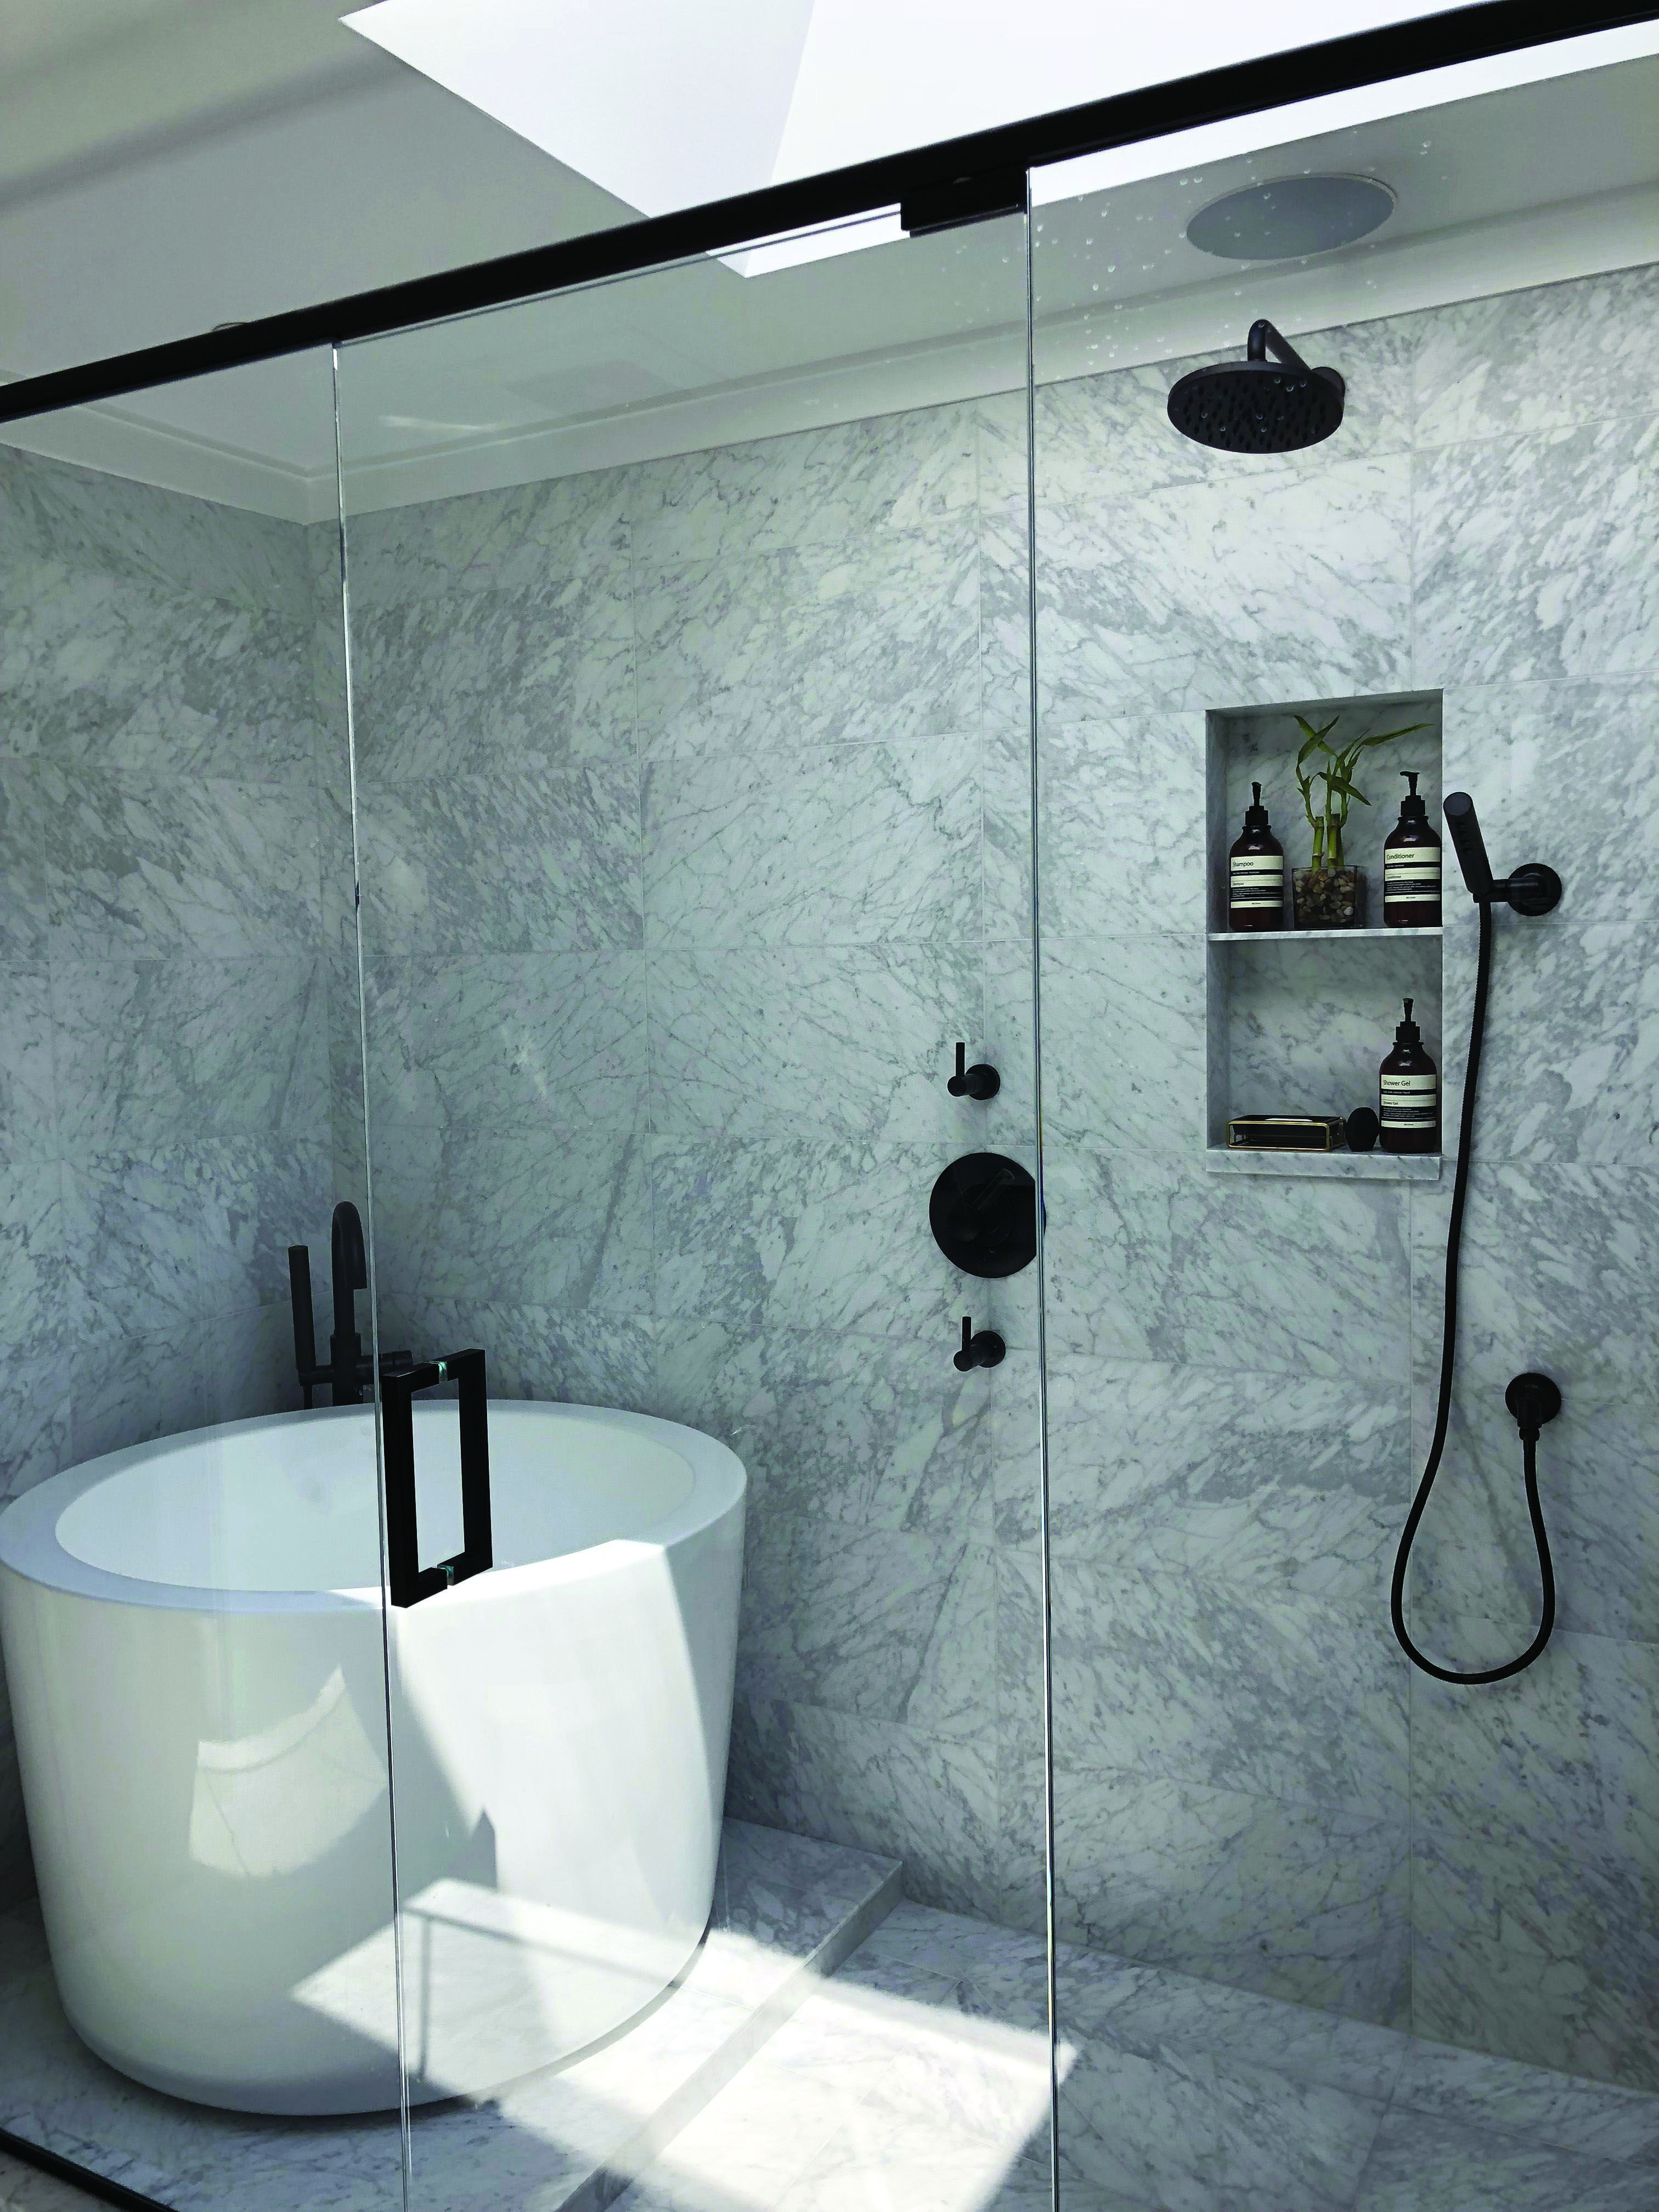 Small Bathtub And Shower Combos Marmorin Soaking Tubs Shower Bath Small Tub And Shower Combo Tiny House Bathroom Small Bathtub Shower Tub